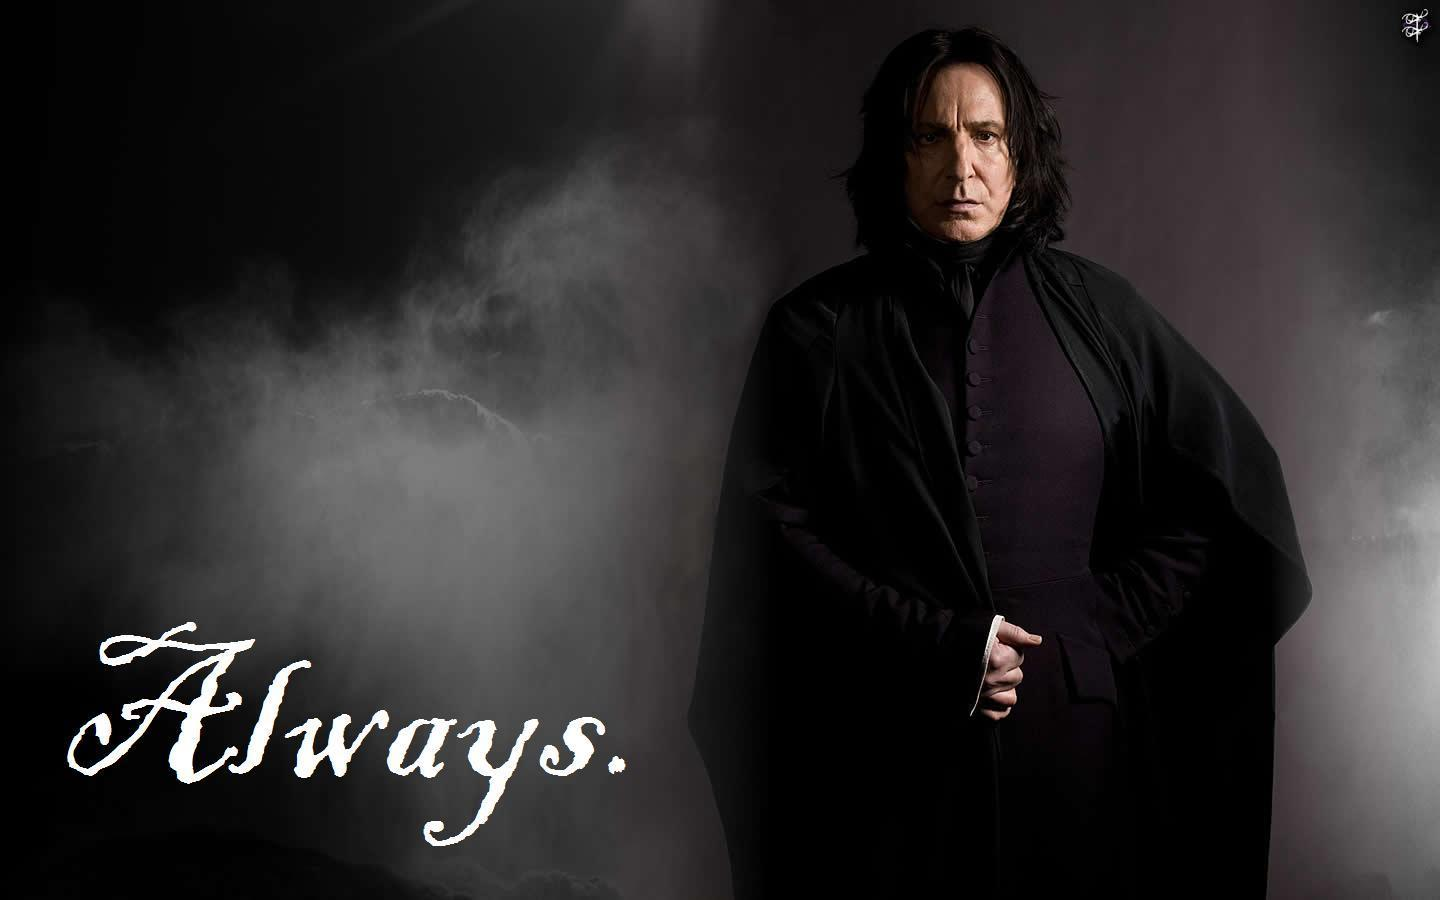 who believes we will qualify? Always-Severus-severus-snape-22732532-1440-900